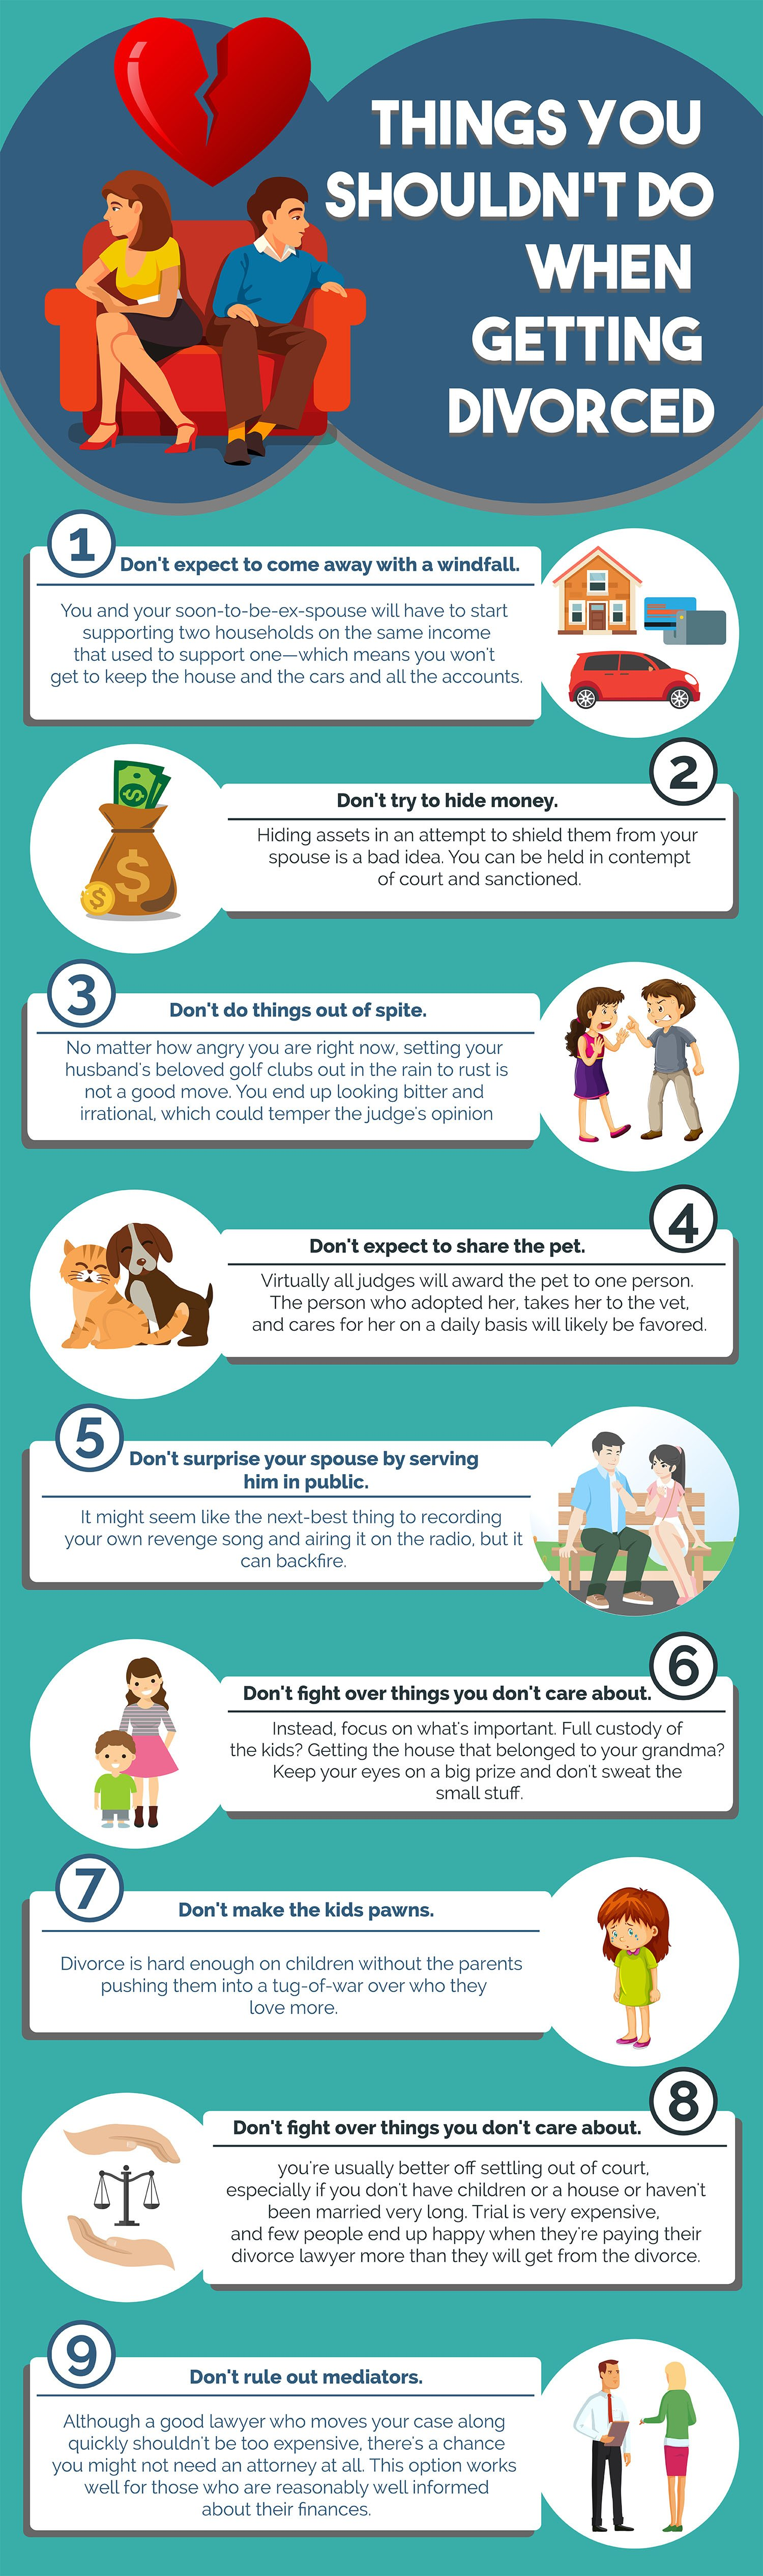 9 Things You Shouldn